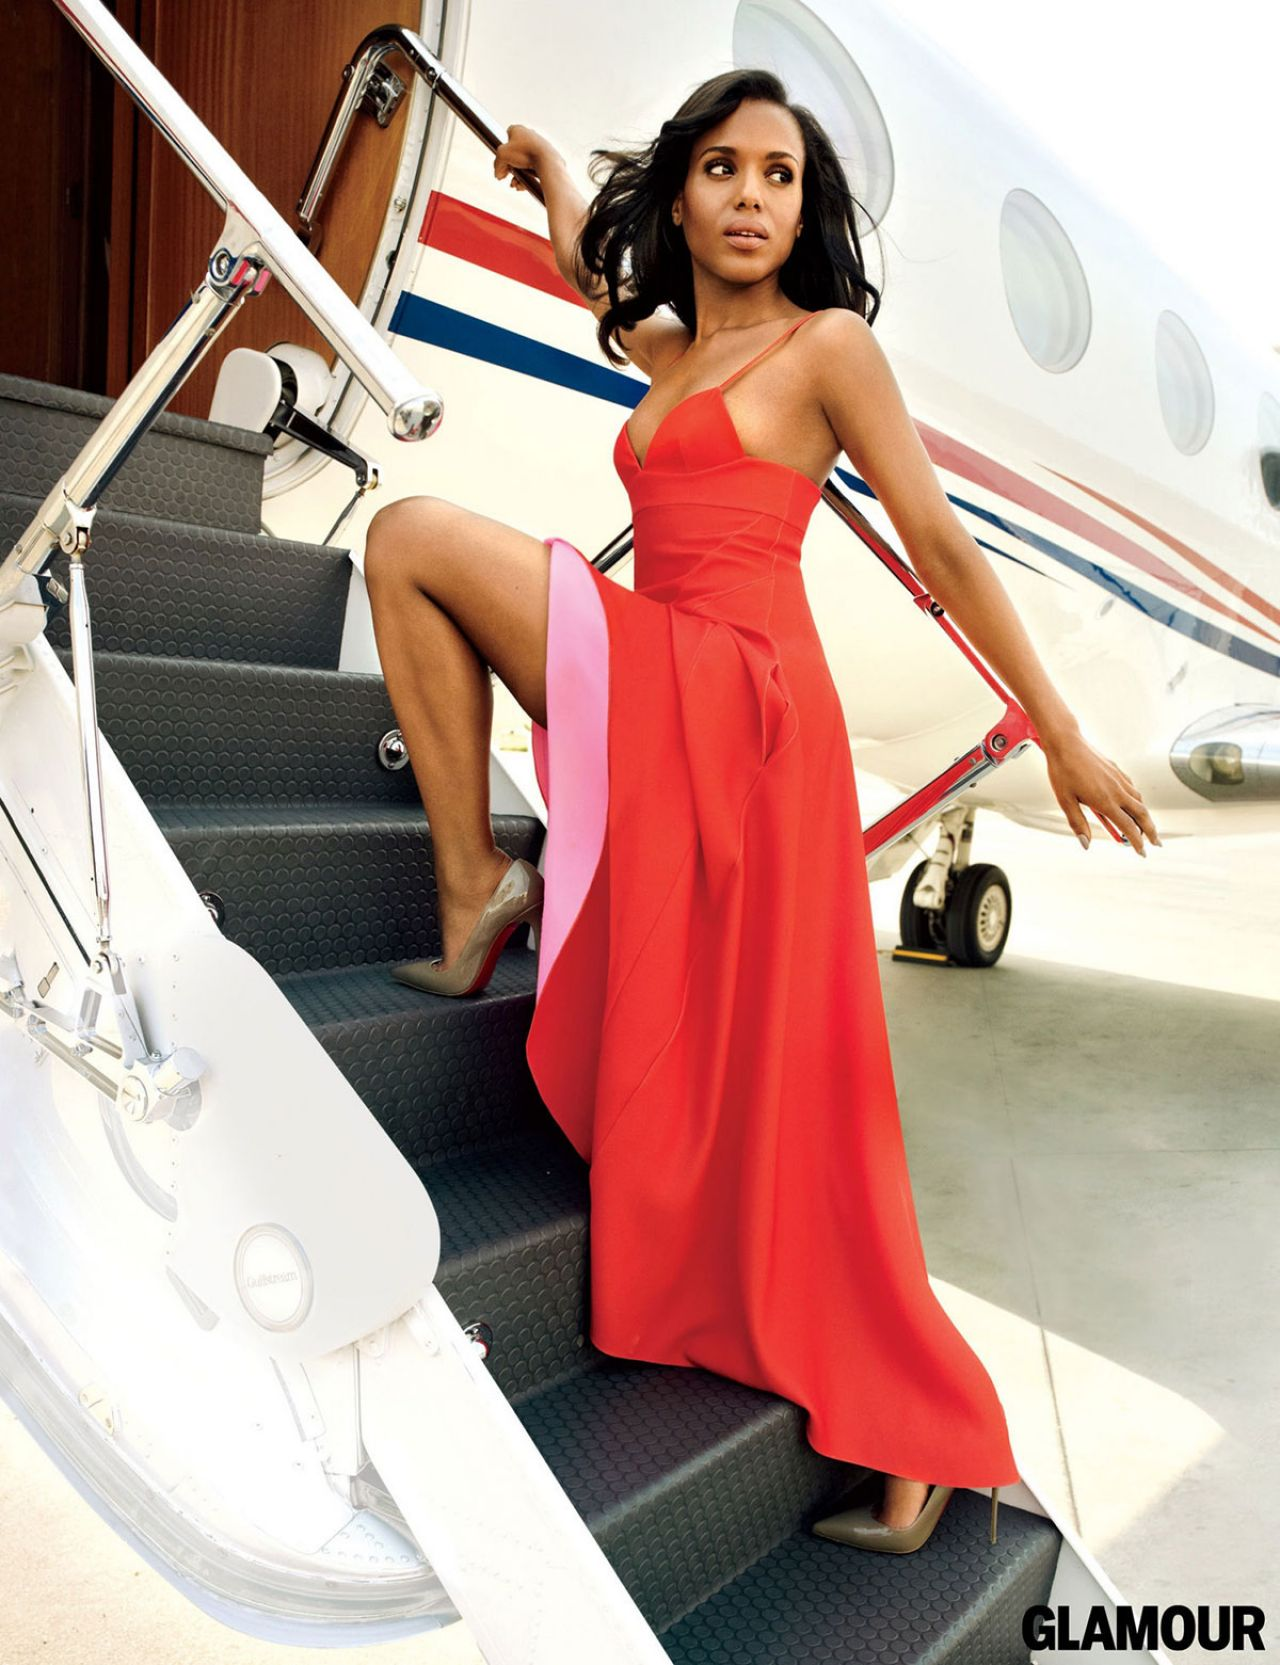 kerry-washington-photoshoot-for-glamour-magazine-october-2014_2